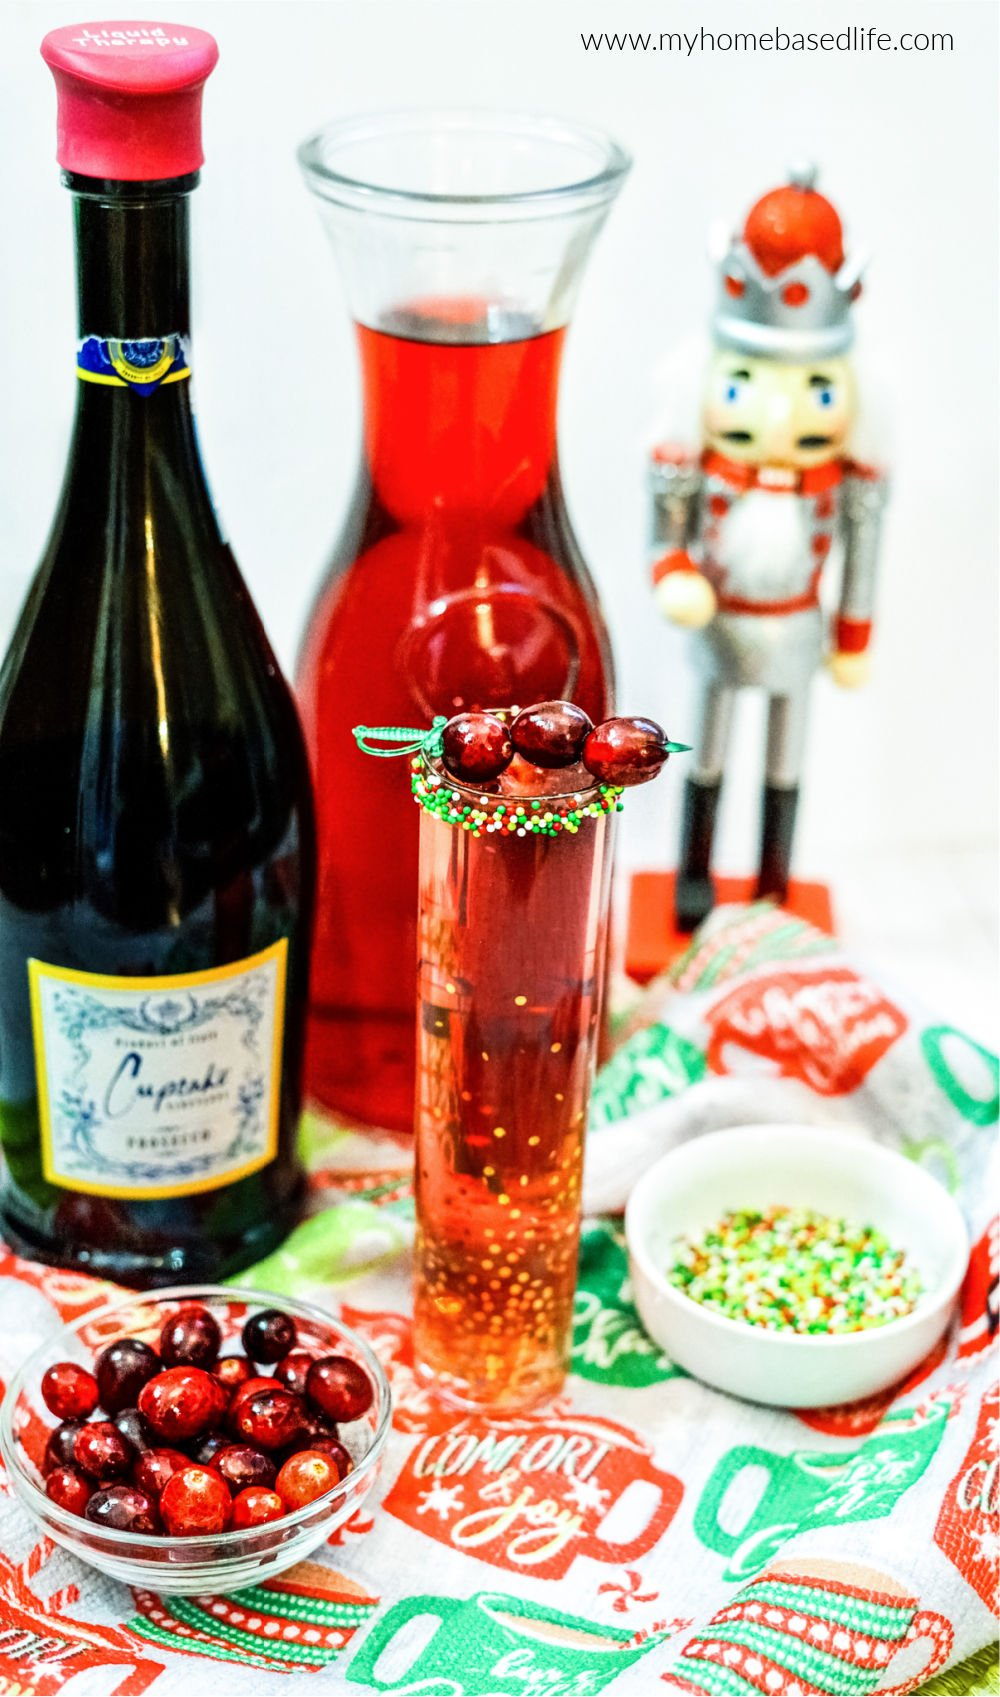 cranberry mimosa for the holidays